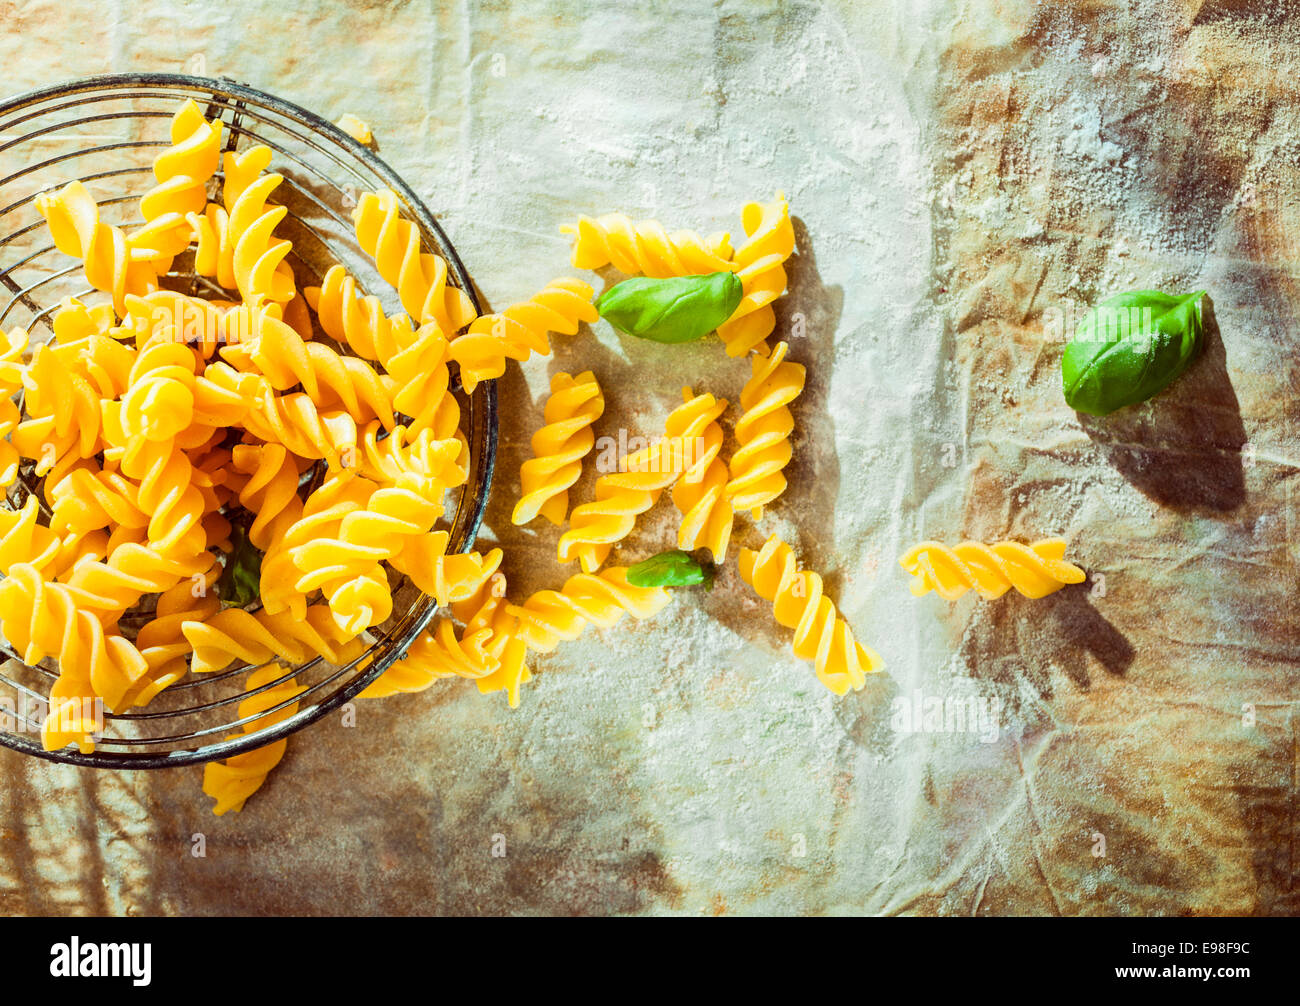 Preparing an Italian fusilli pasta dish with fresh basil leaves and the traditional spiral corkscrew shaped pasta Stock Photo